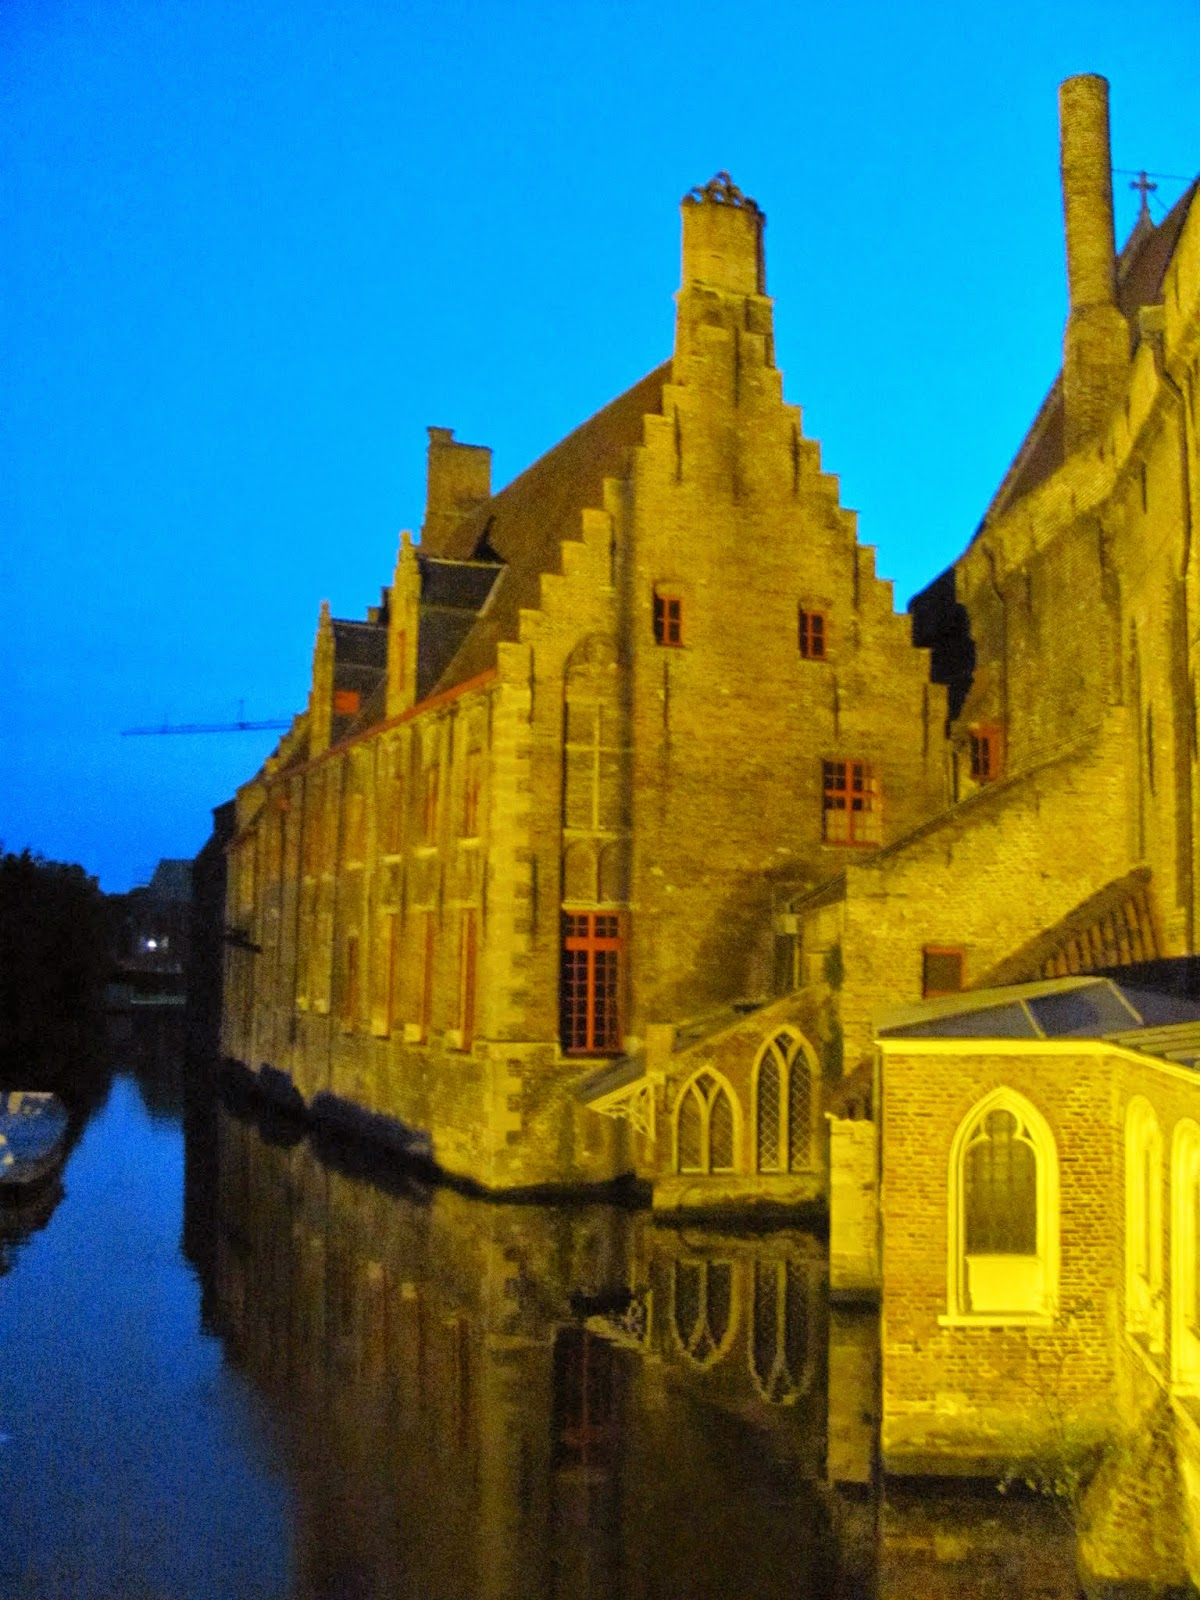 Gabled Roof on the Canal Bruges